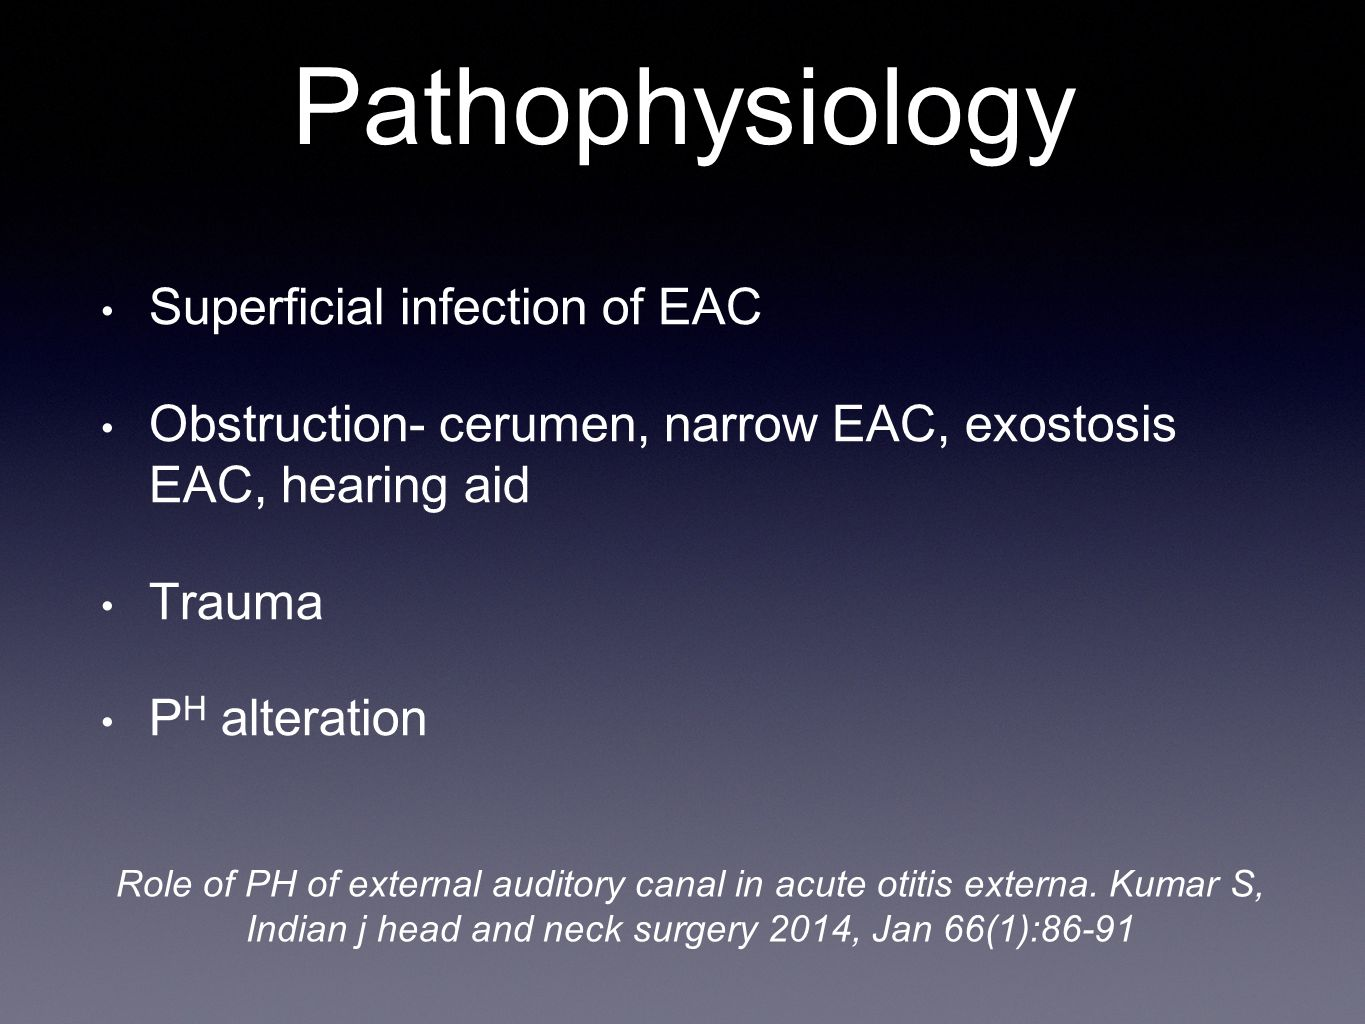 Pathophysiology Superficial infection of EAC Obstruction- cerumen, narrow EAC, exostosis EAC, hearing aid Trauma P H alteration Role of PH of external